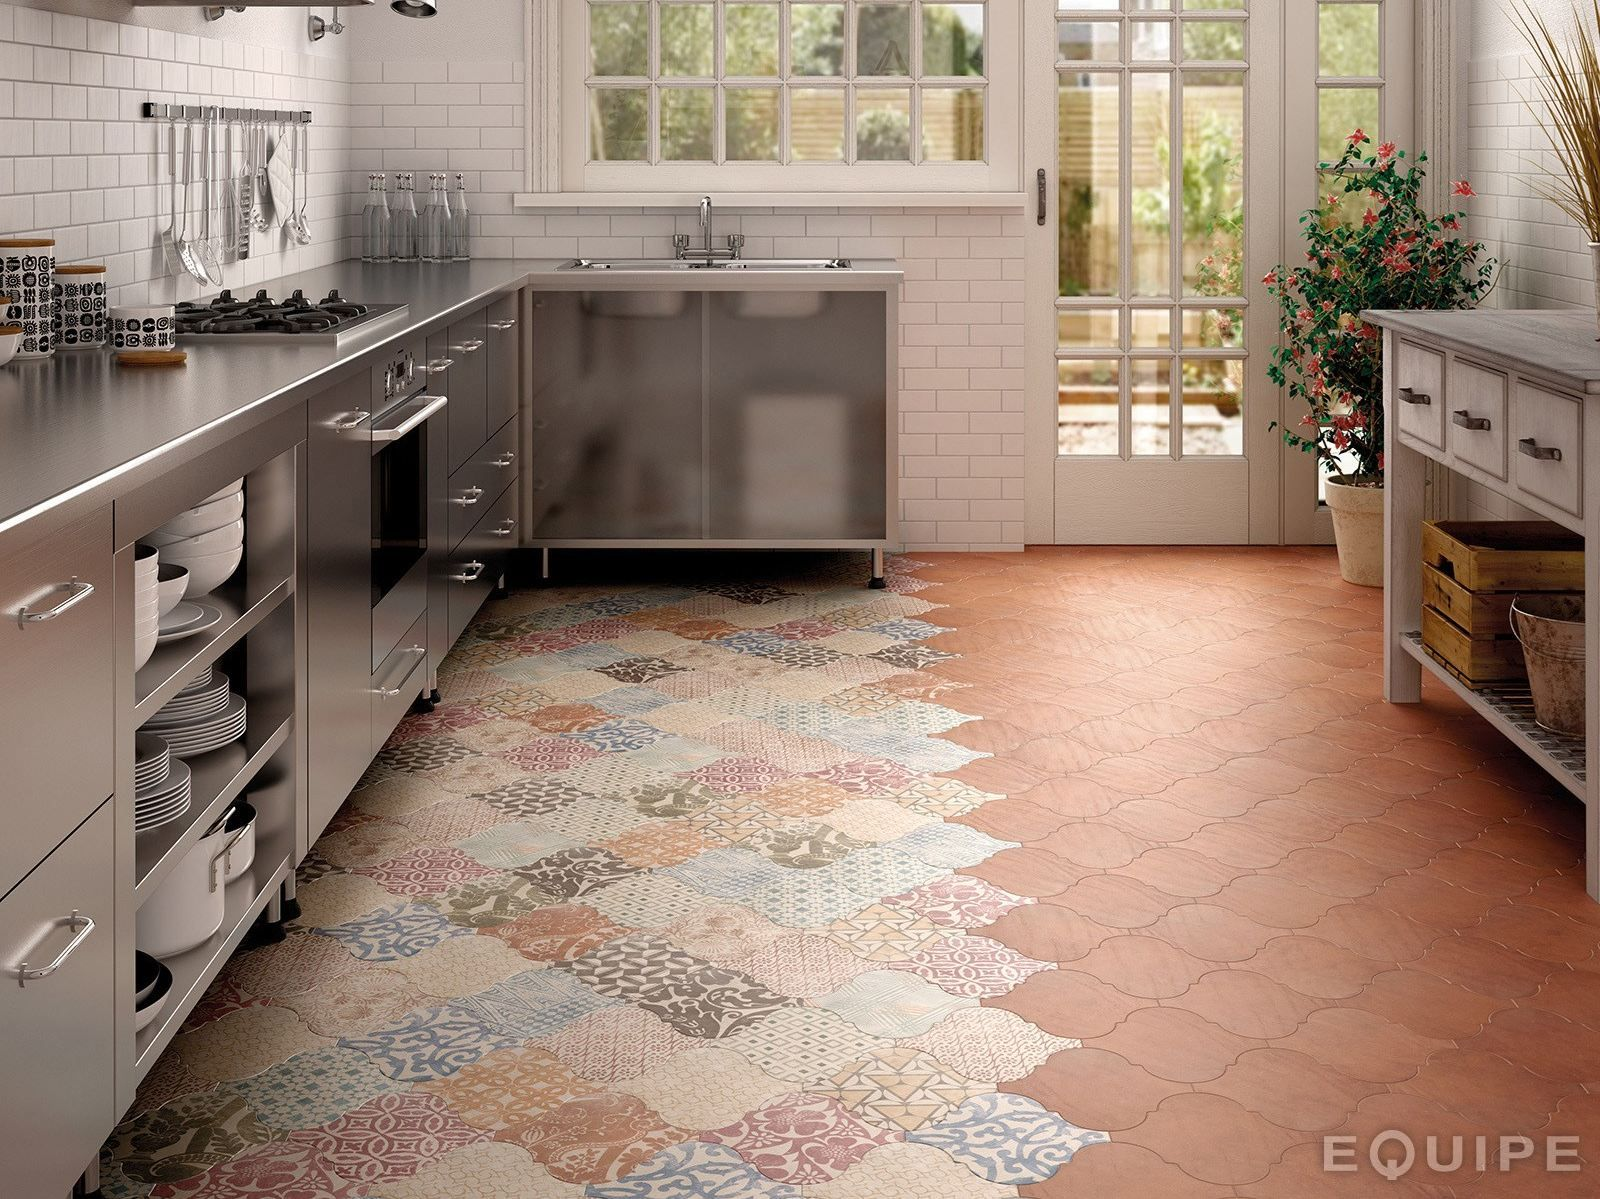 Perfect 21 Arabesque Tile Ideas For Floor, Wall And Backsplash